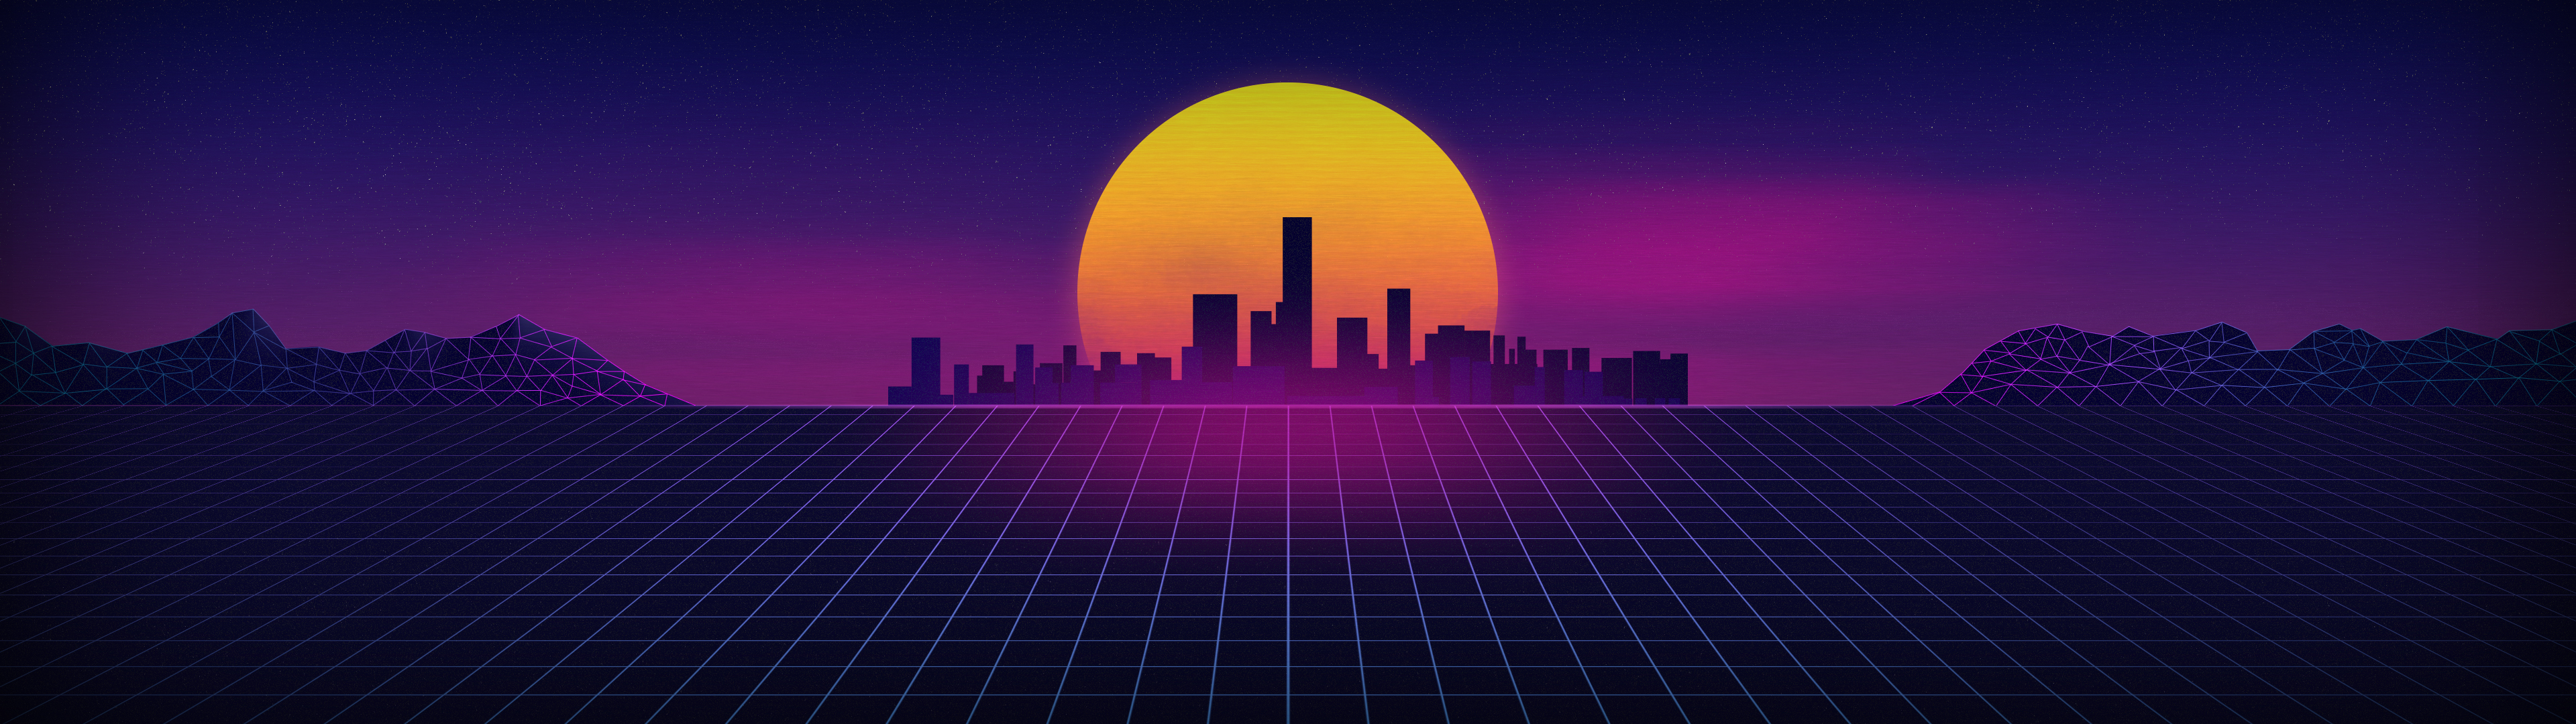 Synthwave Dual Screen Wallpaper By Prostyle43 On Deviantart